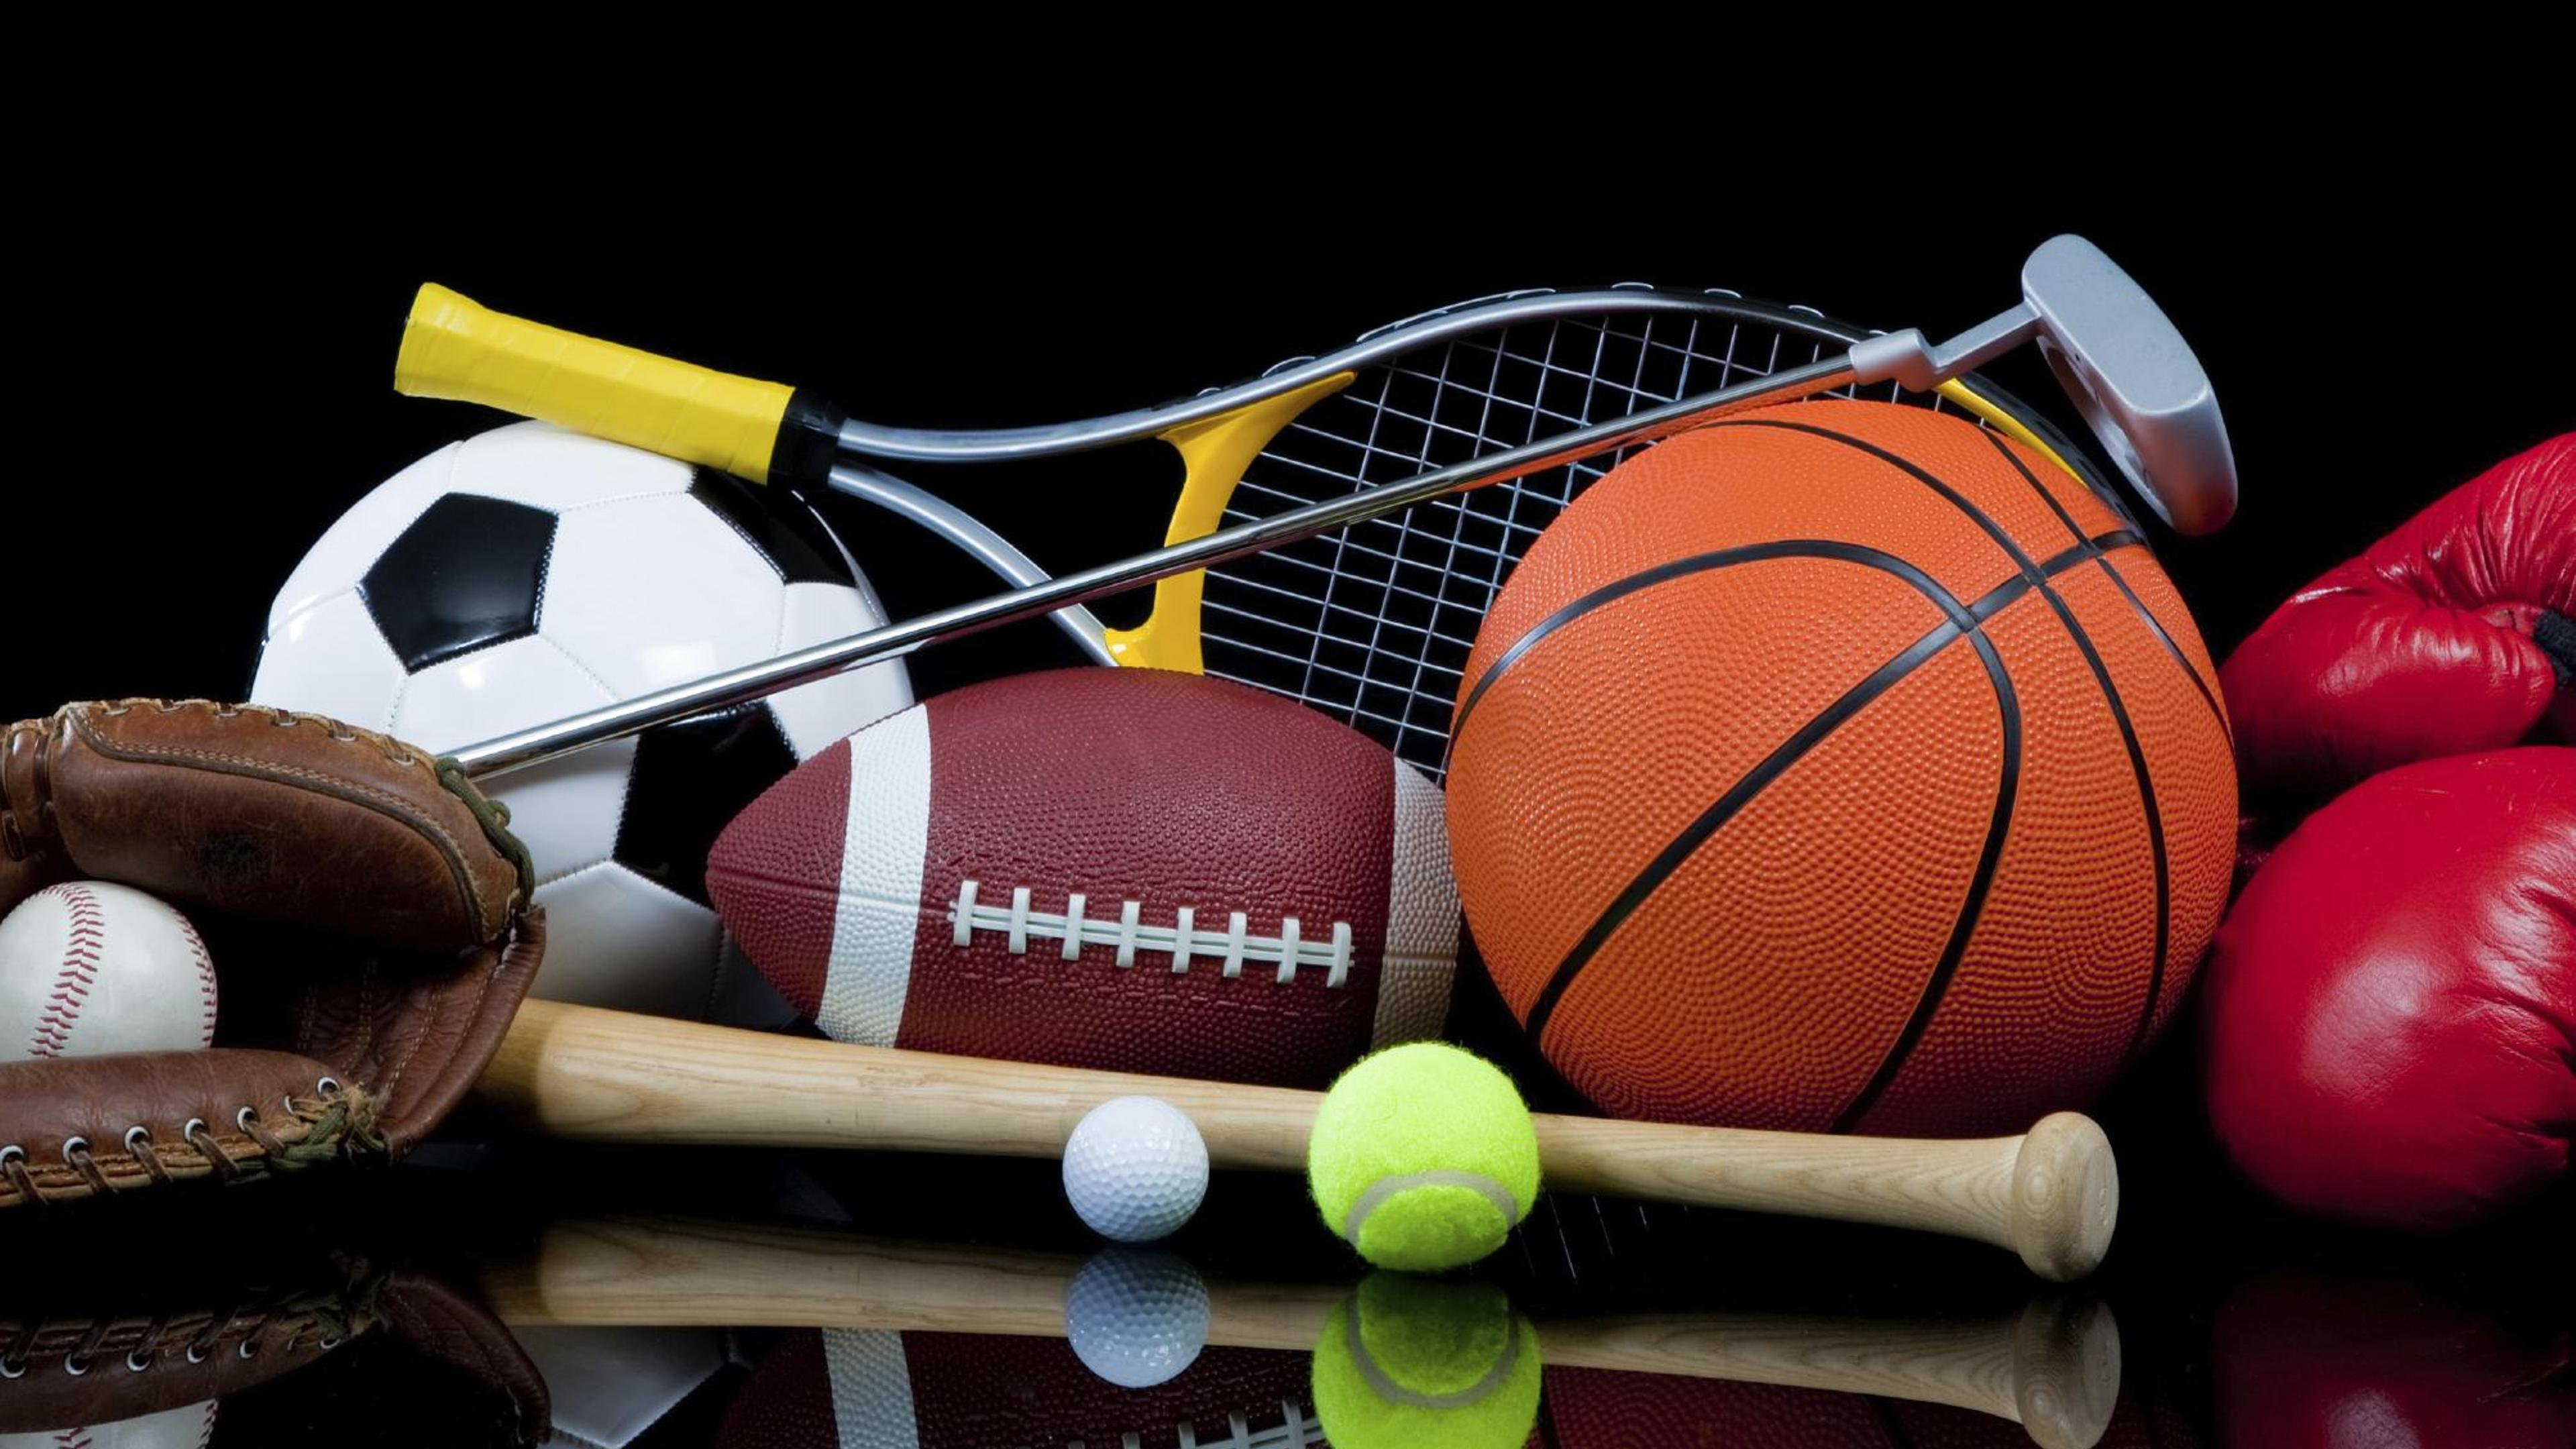 many accessories for different sport wallpaper download 3840x2160